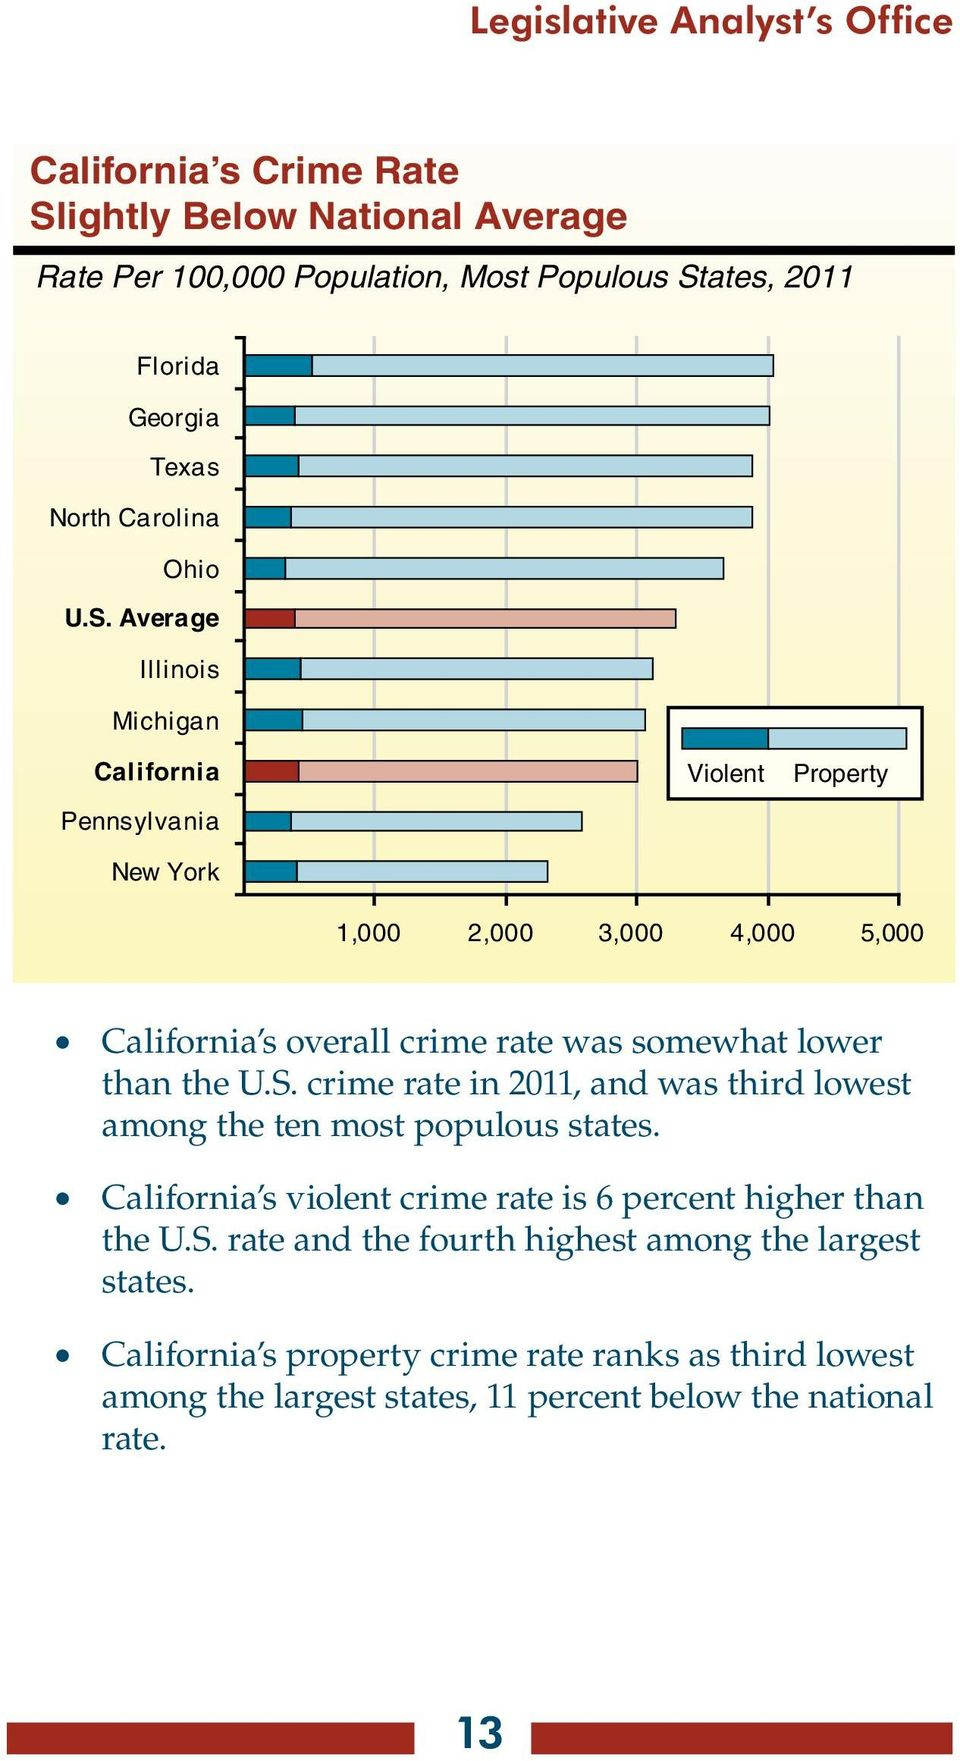 Average Illinois Michigan California Pennsylvania New York Violent Property 1,000 2,000 3,000 4,000 5,000 California s overall crime rate was somewhat lower than the U.S.